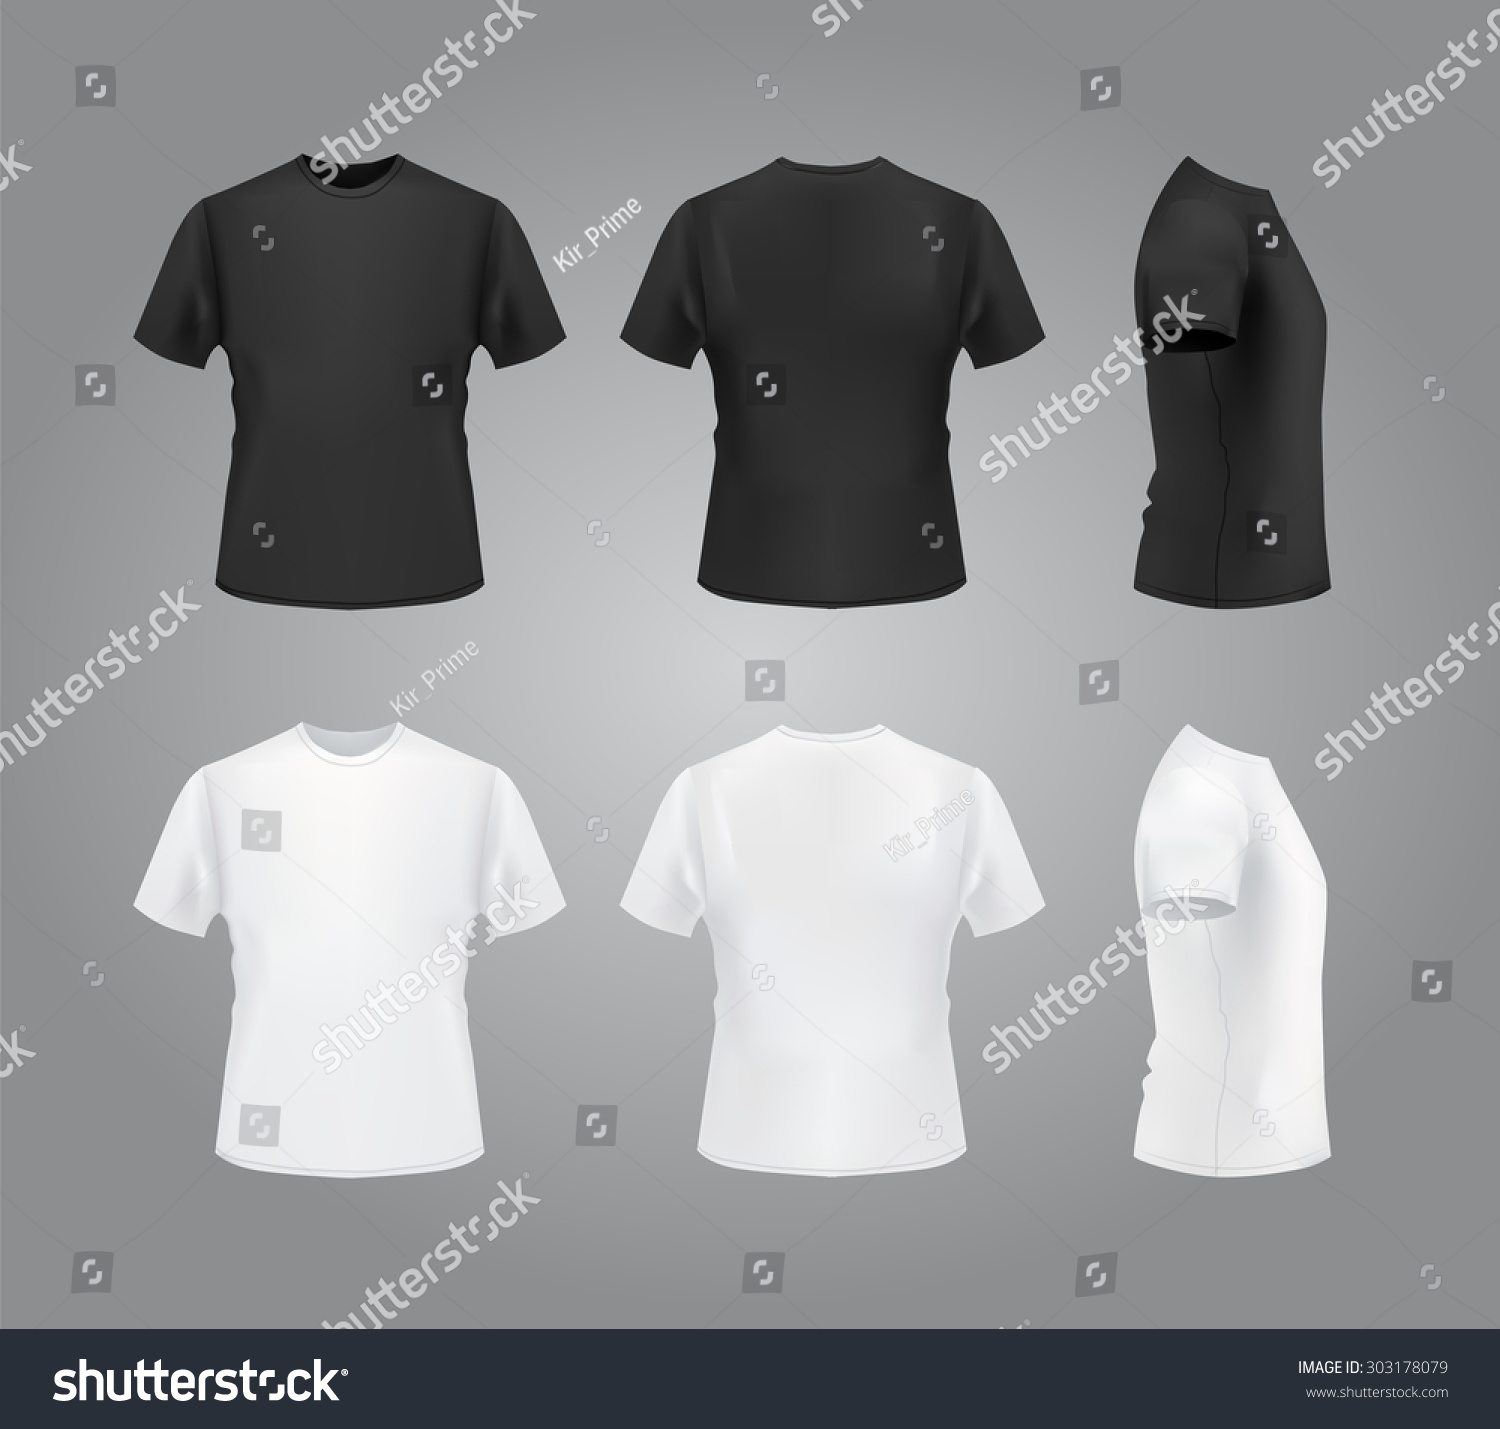 White t shirt eps - T Shirt Template Set Front Side Back View Vector Eps 10